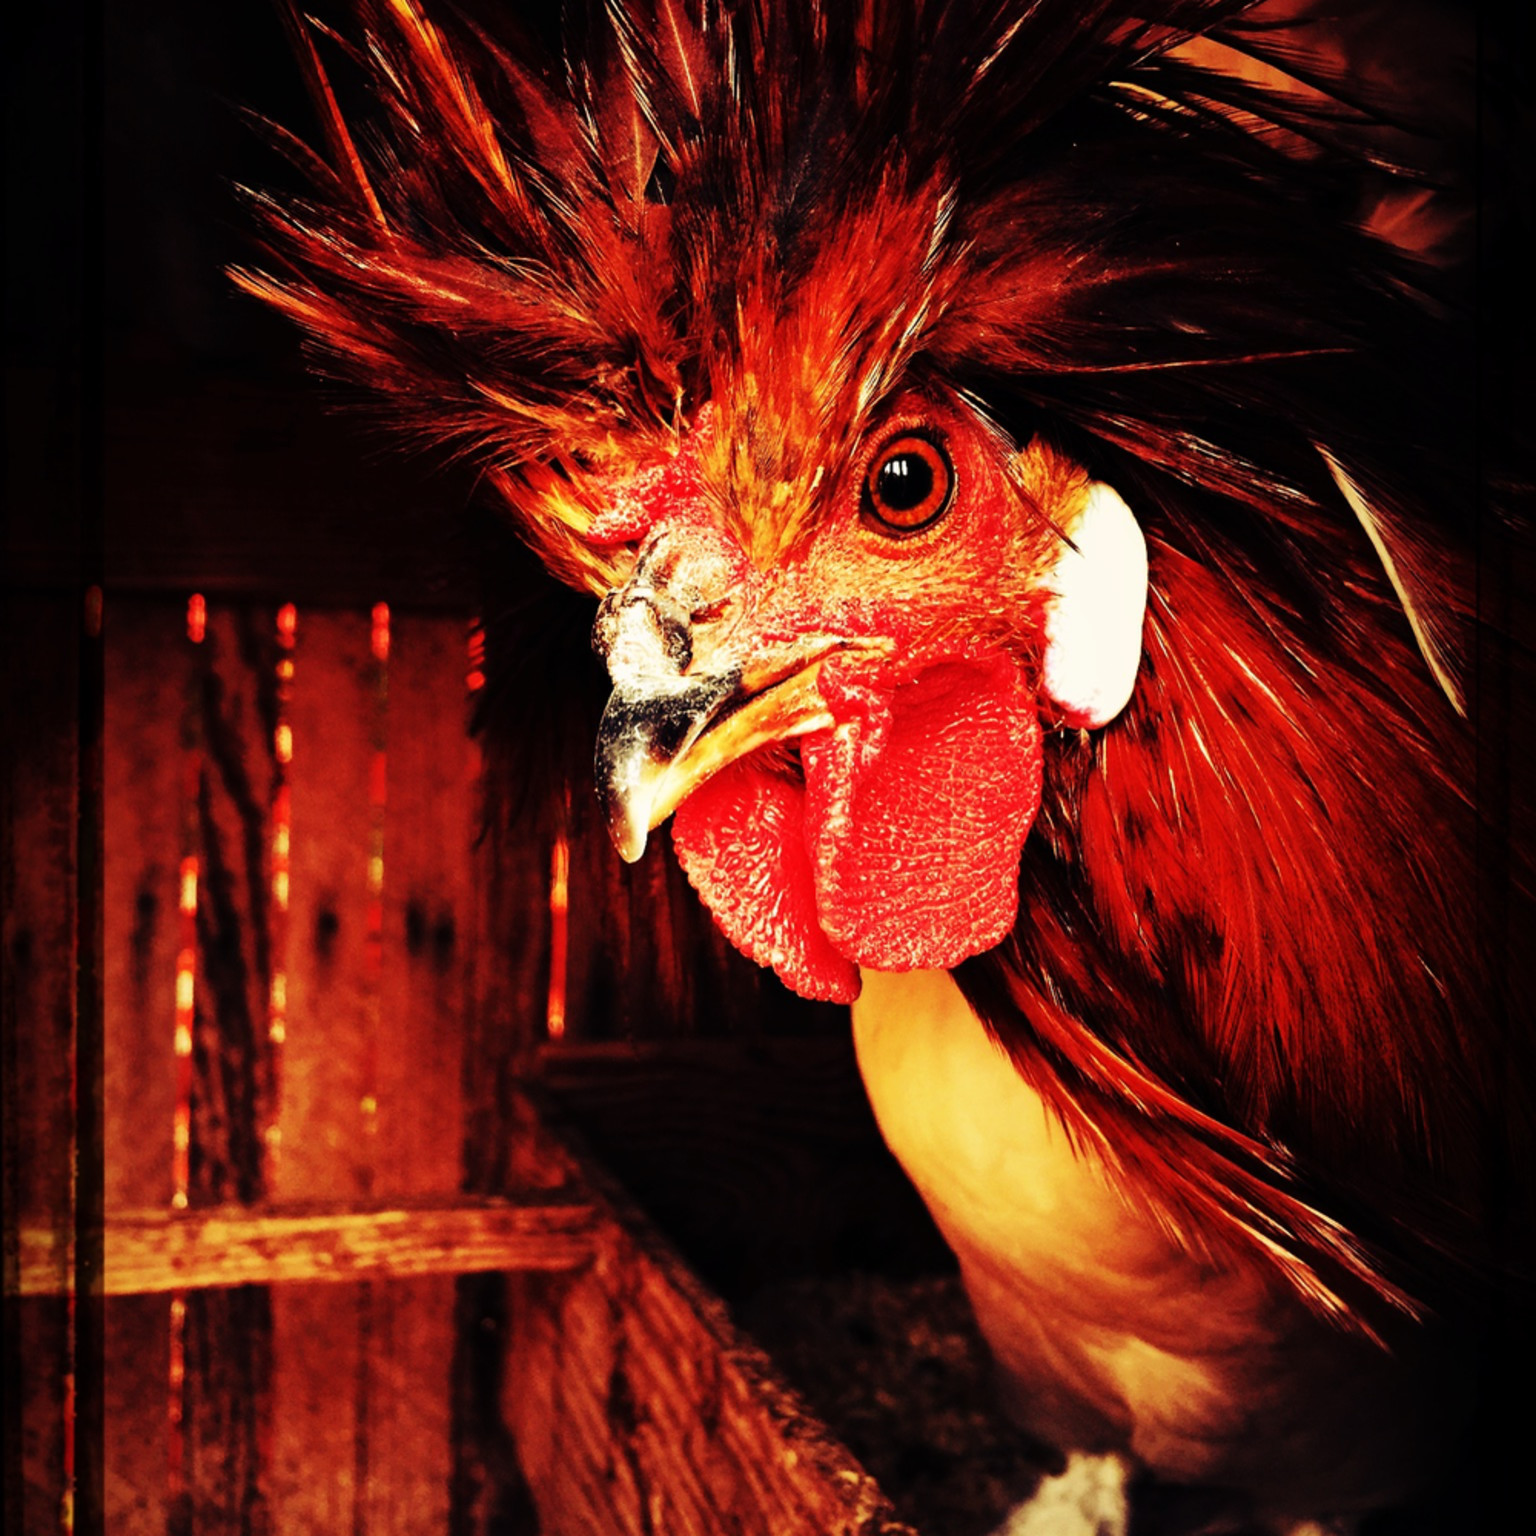 Red rooster attitude img 8912 bootz2